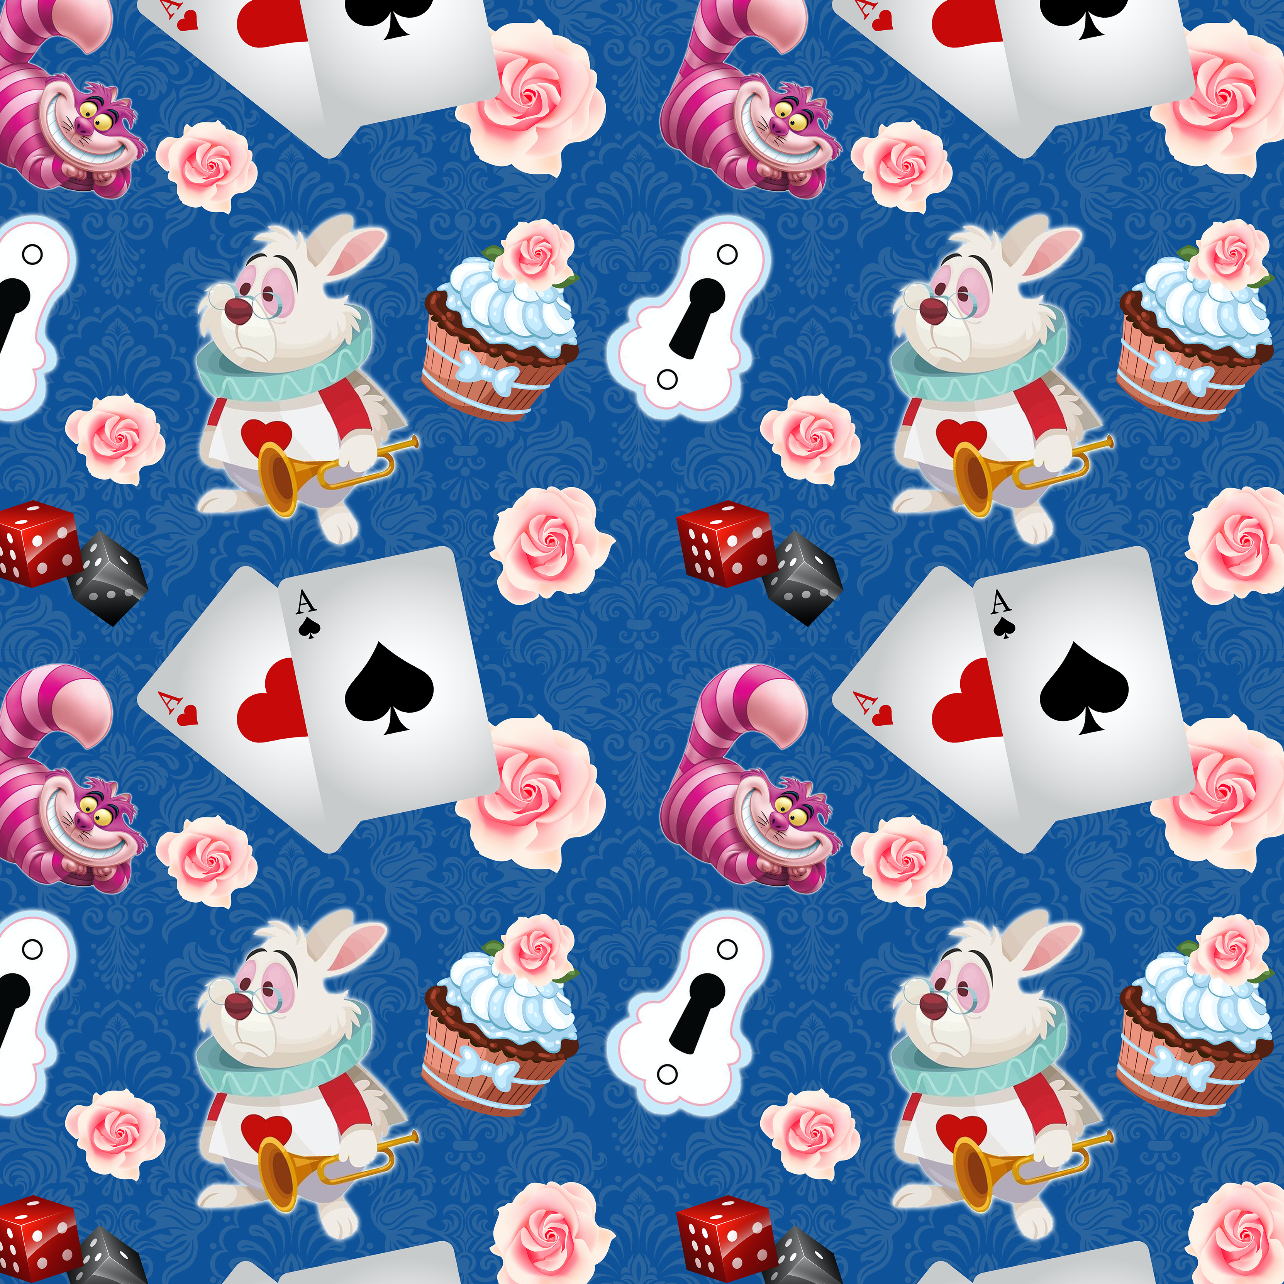 PRE ORDER - Wonderland Dark Blue - Digital Fabric Print